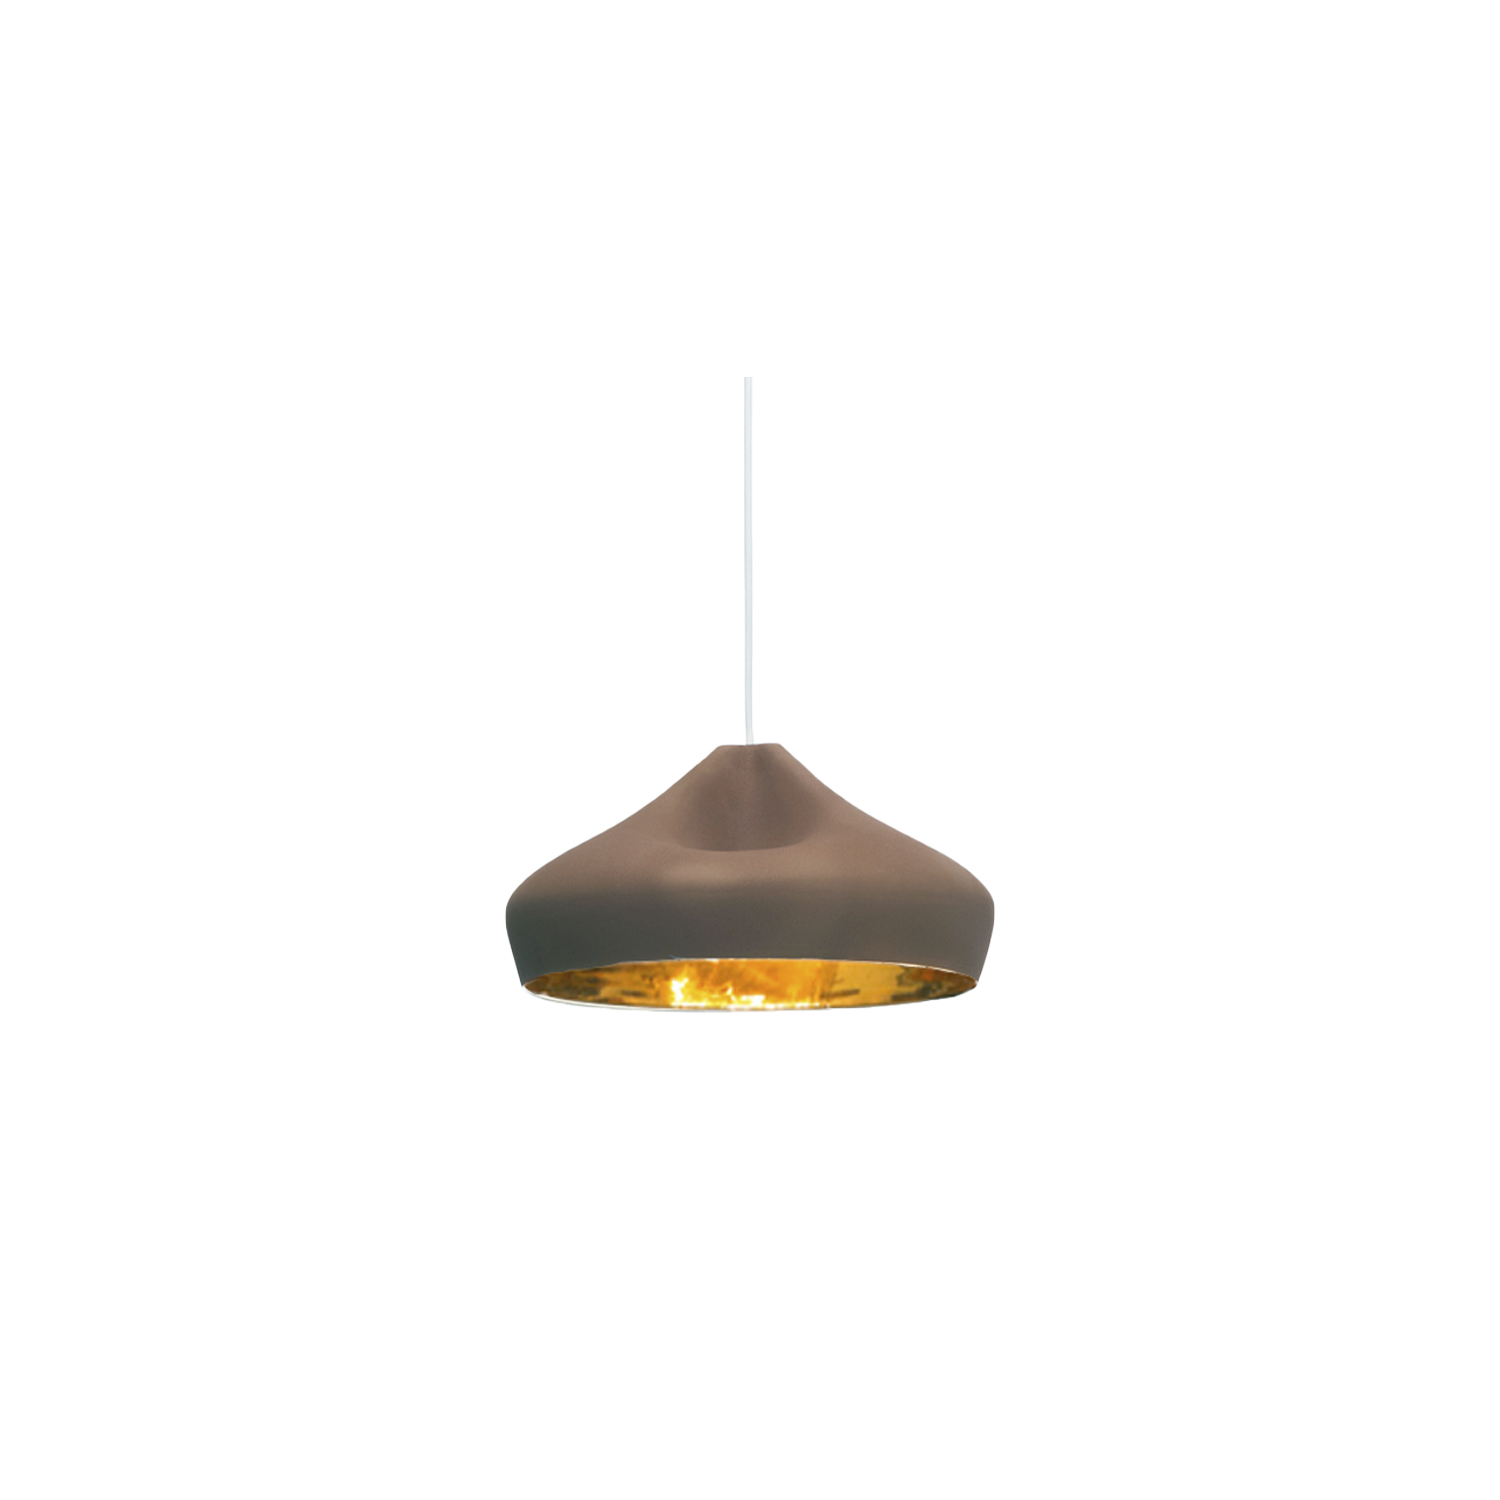 Pleat Box 47 Pendant Light - The idea behind the Pleat Box is a sophisticated combination between a digitally designed crease in a piece of cloth and a silhouette that is applied to a ceramic base. The outer part of the lamp is offered in white ceramic, brown, black, terracotta, and grey– the direct result of recycling different enamels. The interior is available in brilliant white enamel, which enhances the luminous light from the lamp, or 24k gold, which generates an extremely warm light. The Pleat Box collection is now available with an integrated LED technology, which projects indirect light and prevents glare.  | Matter of Stuff